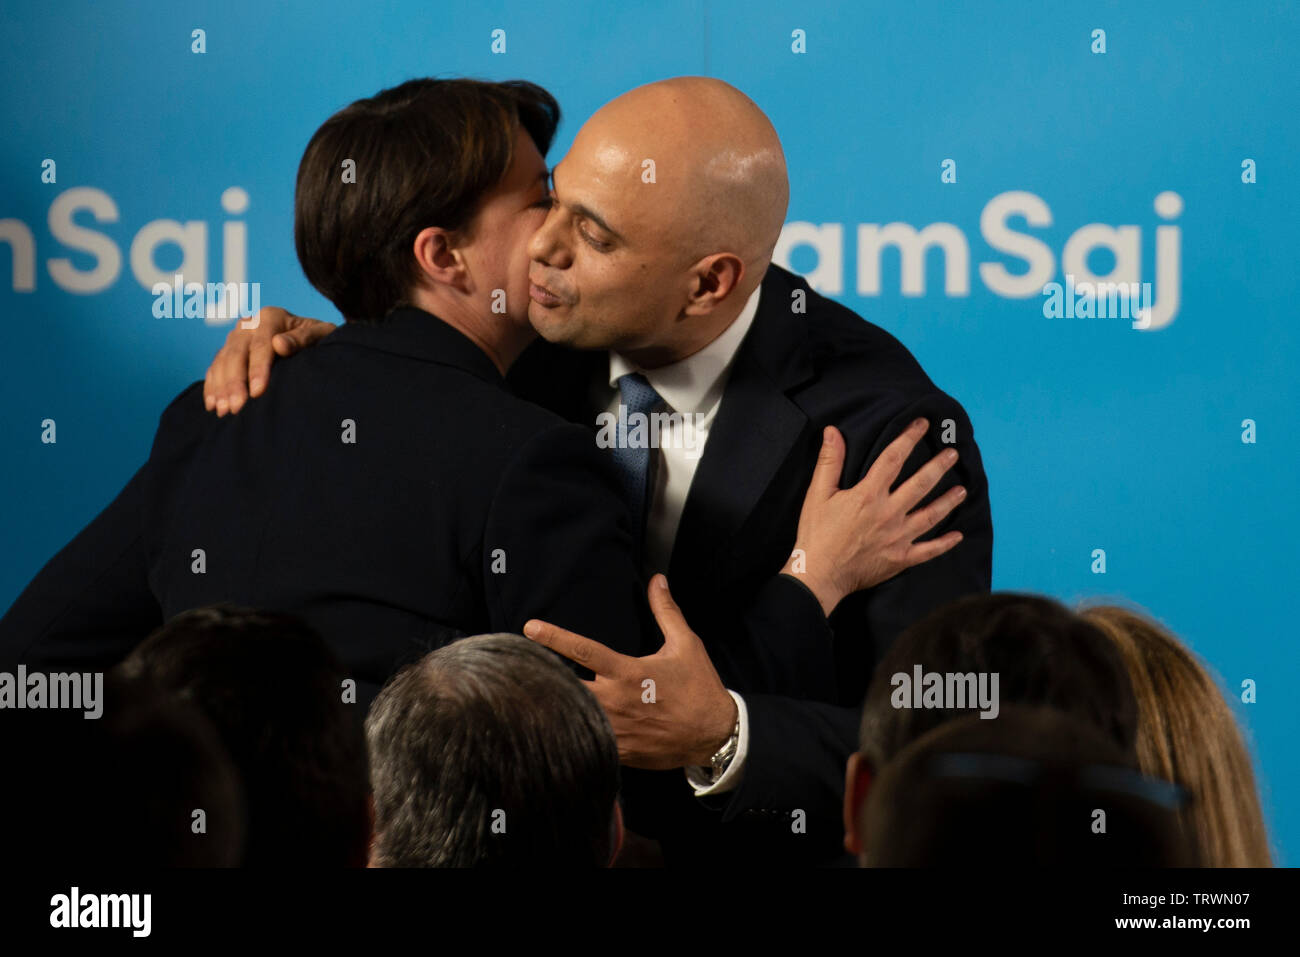 London, UK. 12th June, 2019. Scottish Conservative leader Ruth Davidson embraces Home Secretary Sajid Javid who today launched his bid to be leader of the Conservative and Unionist Party and Prime Minister. Credit: Claire Doherty/Alamy Live News Stock Photo